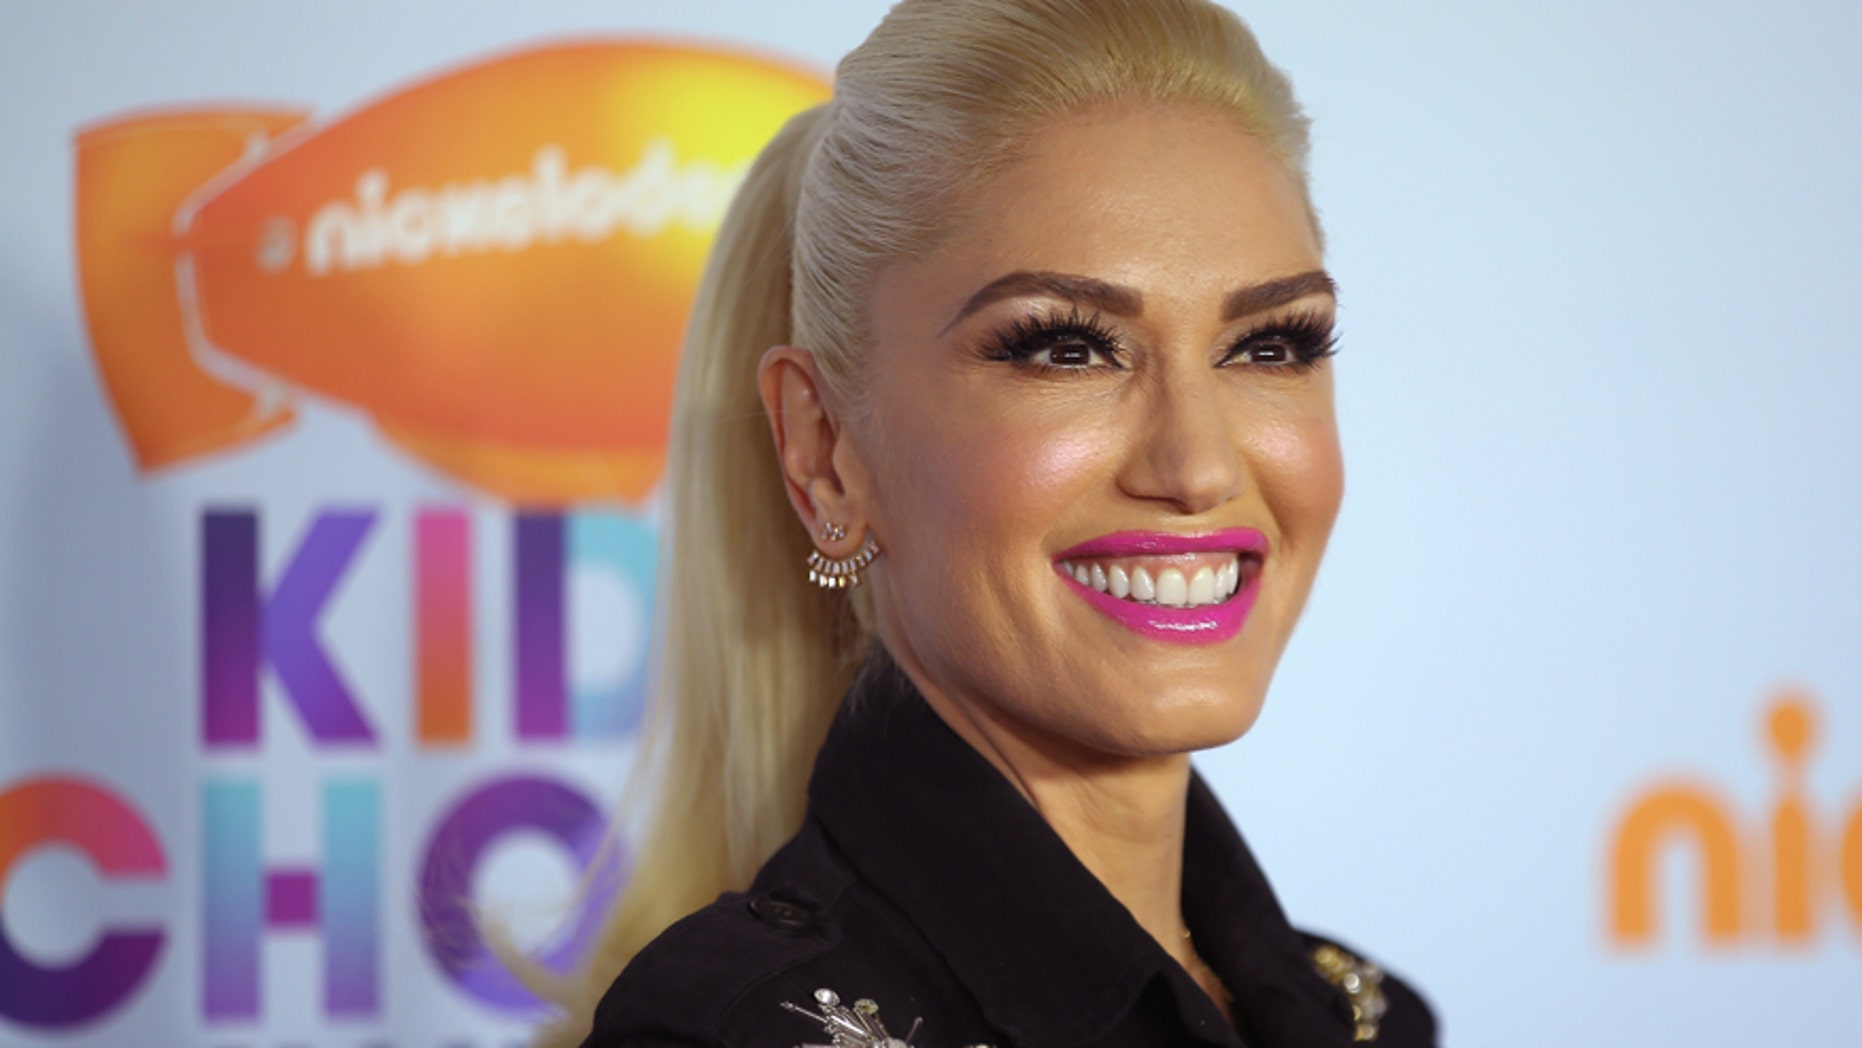 2017 Kids' Choice Awards - Arrivals - Los Angeles, California, U.S., 11/3/2017 - Singer Gwen Stefani. REUTERS/Mike Blake - RTX30MN0